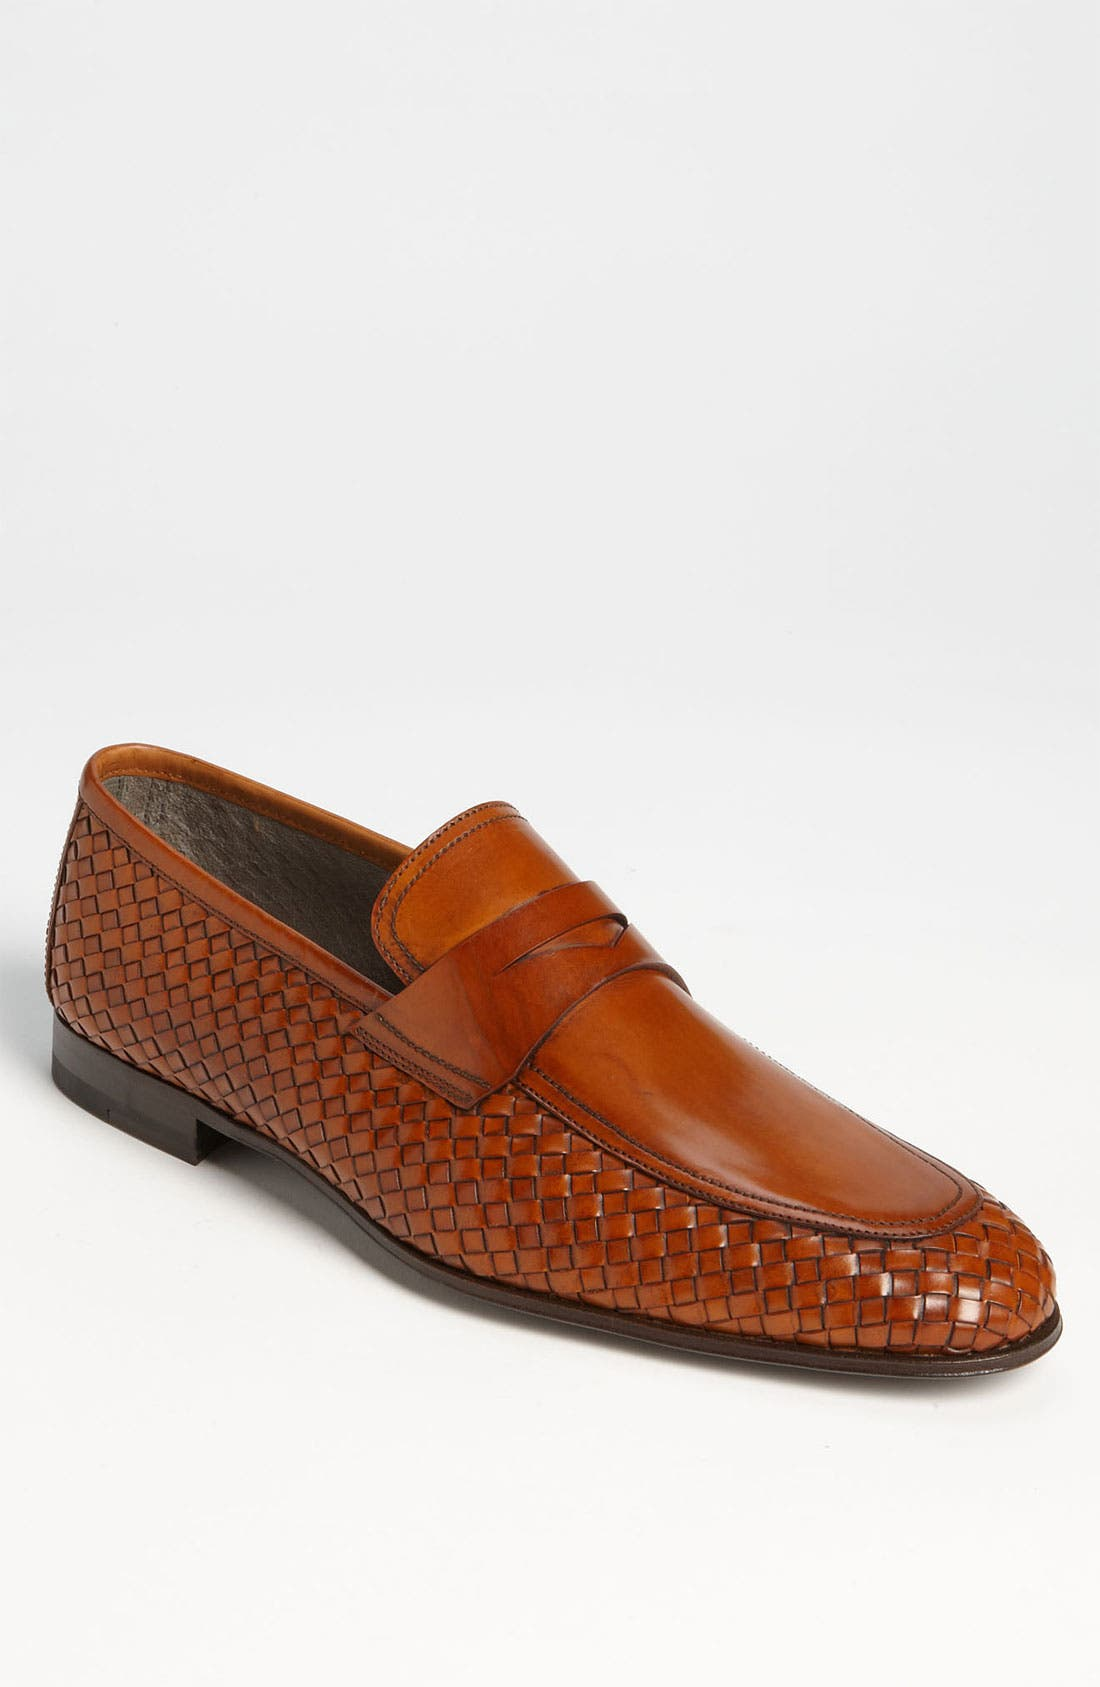 Alternate Image 1 Selected - Magnanni 'Oliver' Woven Penny Loafer (Online Only)